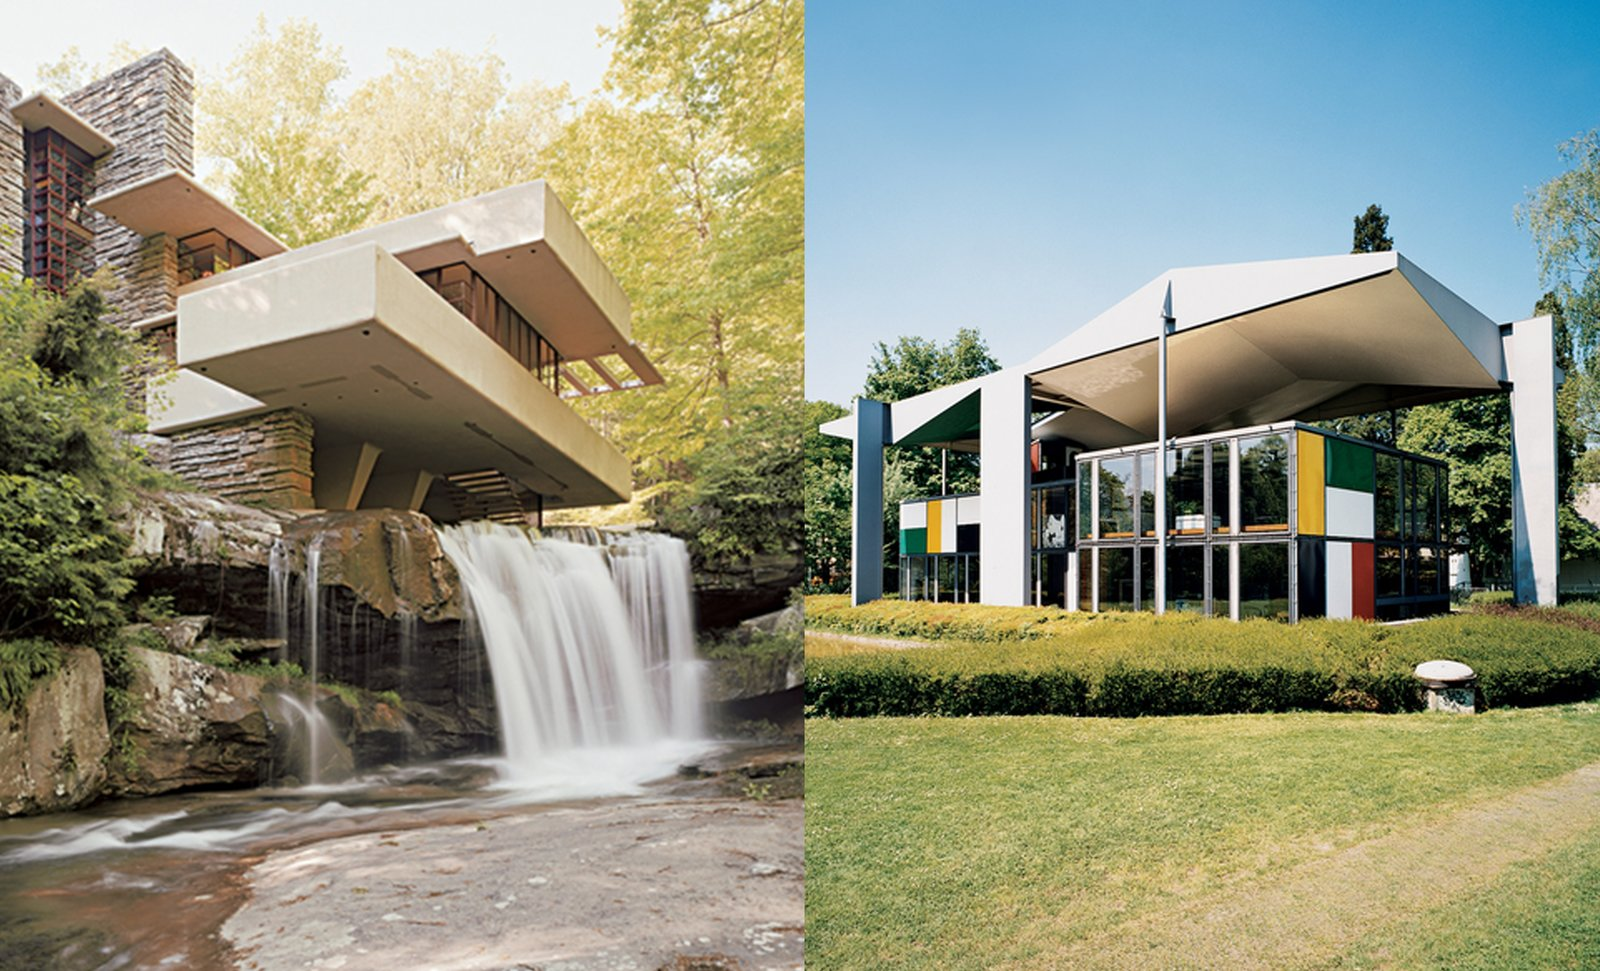 Photo 1 of 1 in Discuss: Who Would Win in a Fight—Frank Lloyd Wright vs. Le Corbusier?